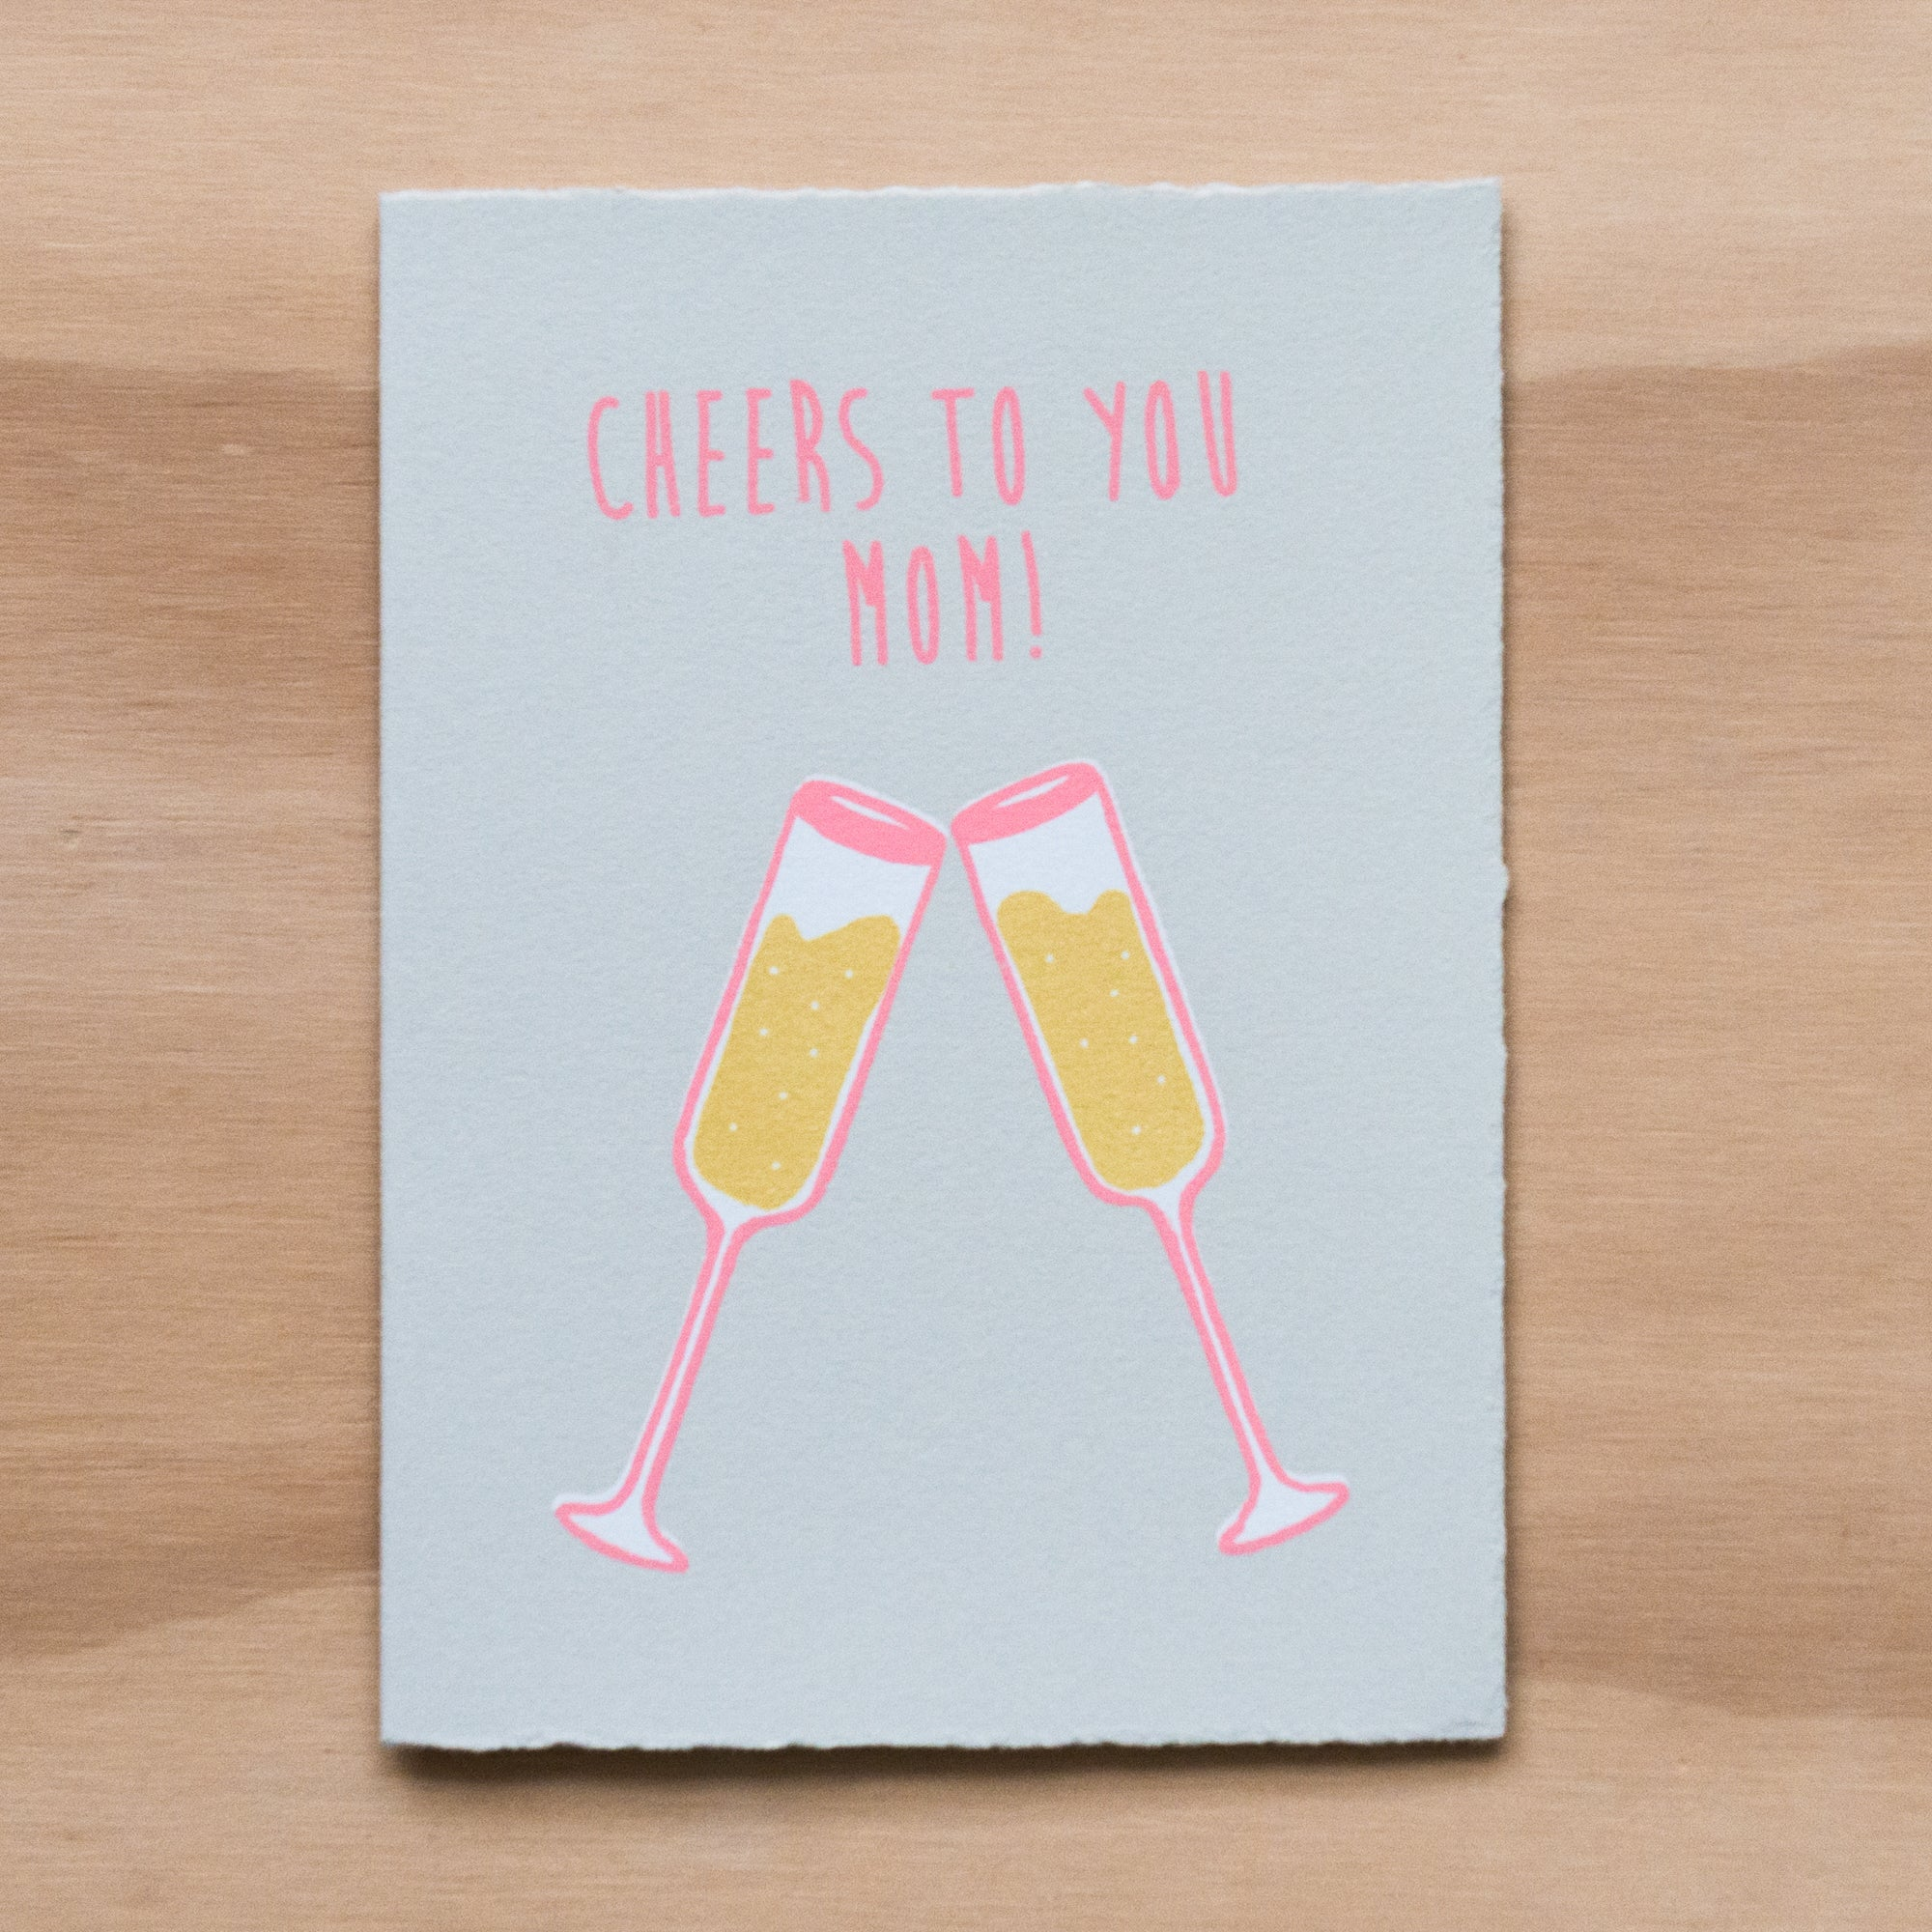 Fullsize Of Cheers To You